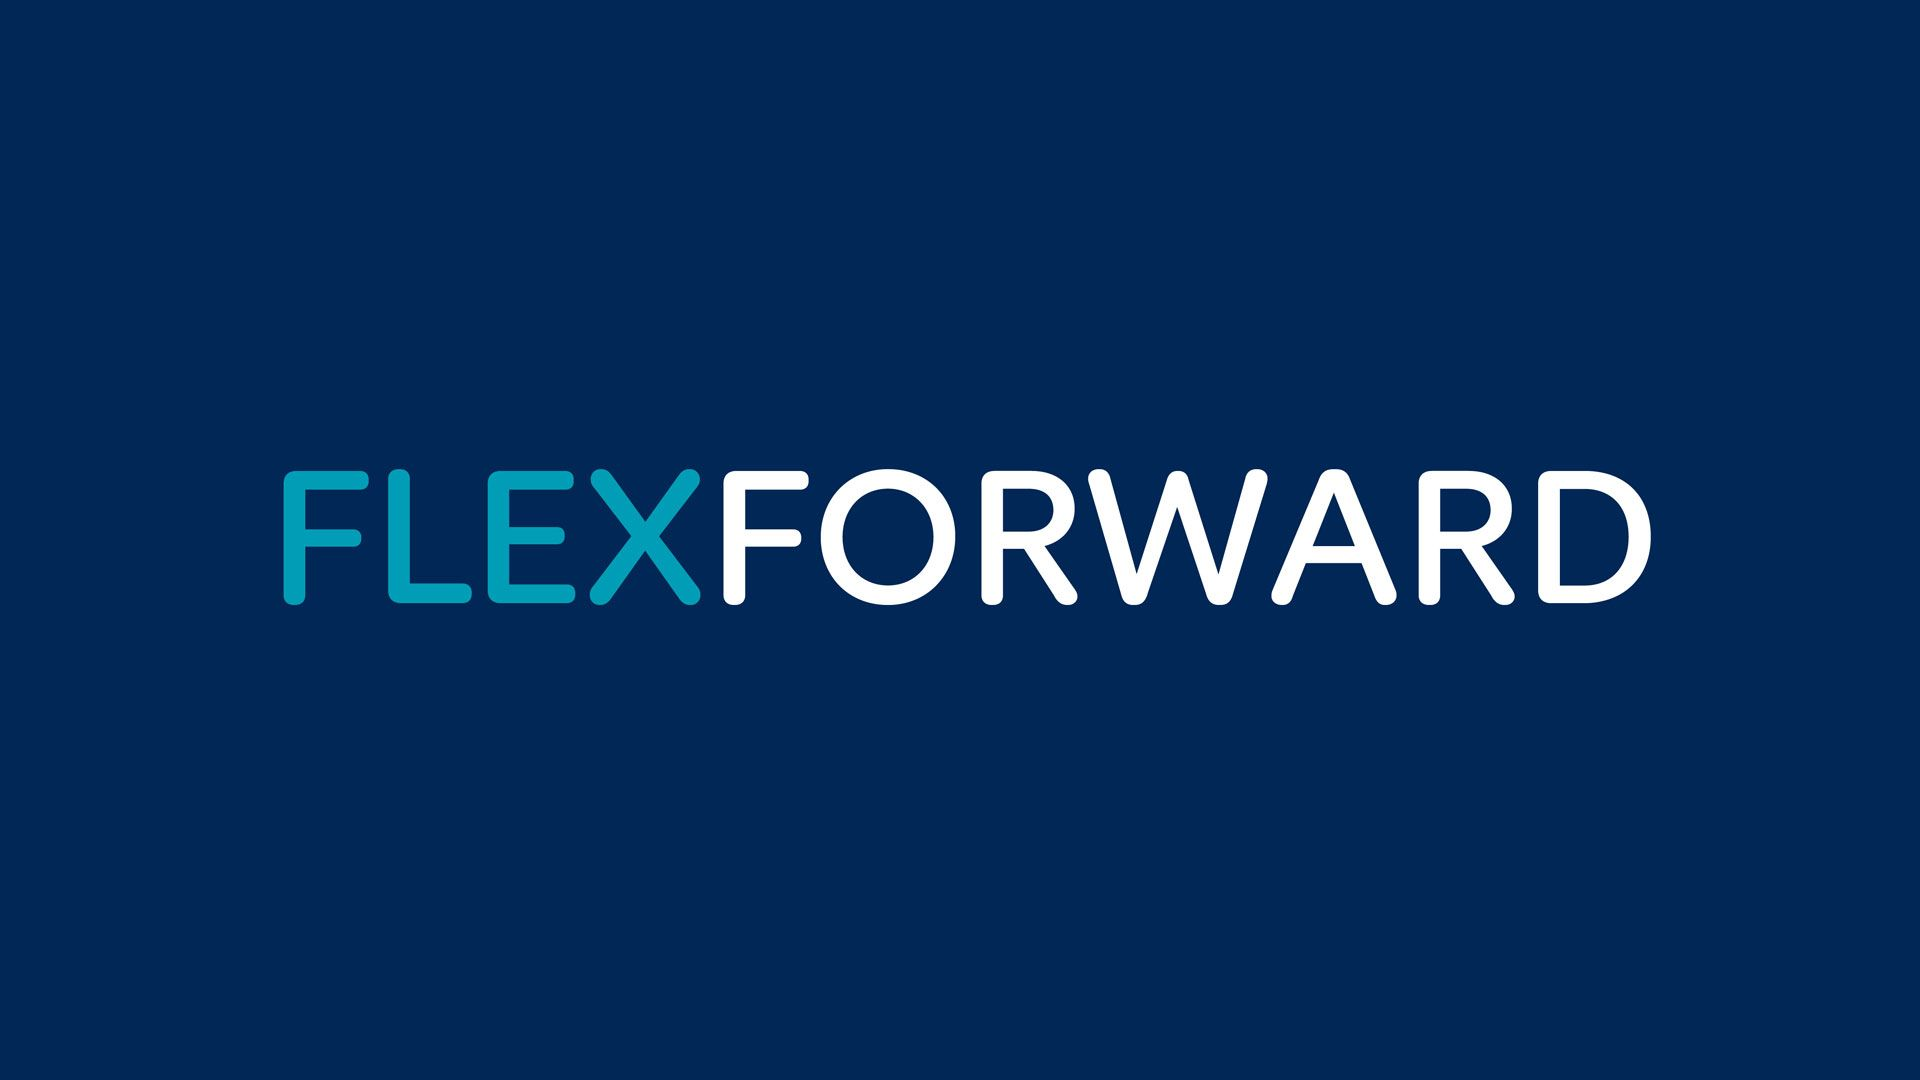 Wintershall Dea Flex Forward